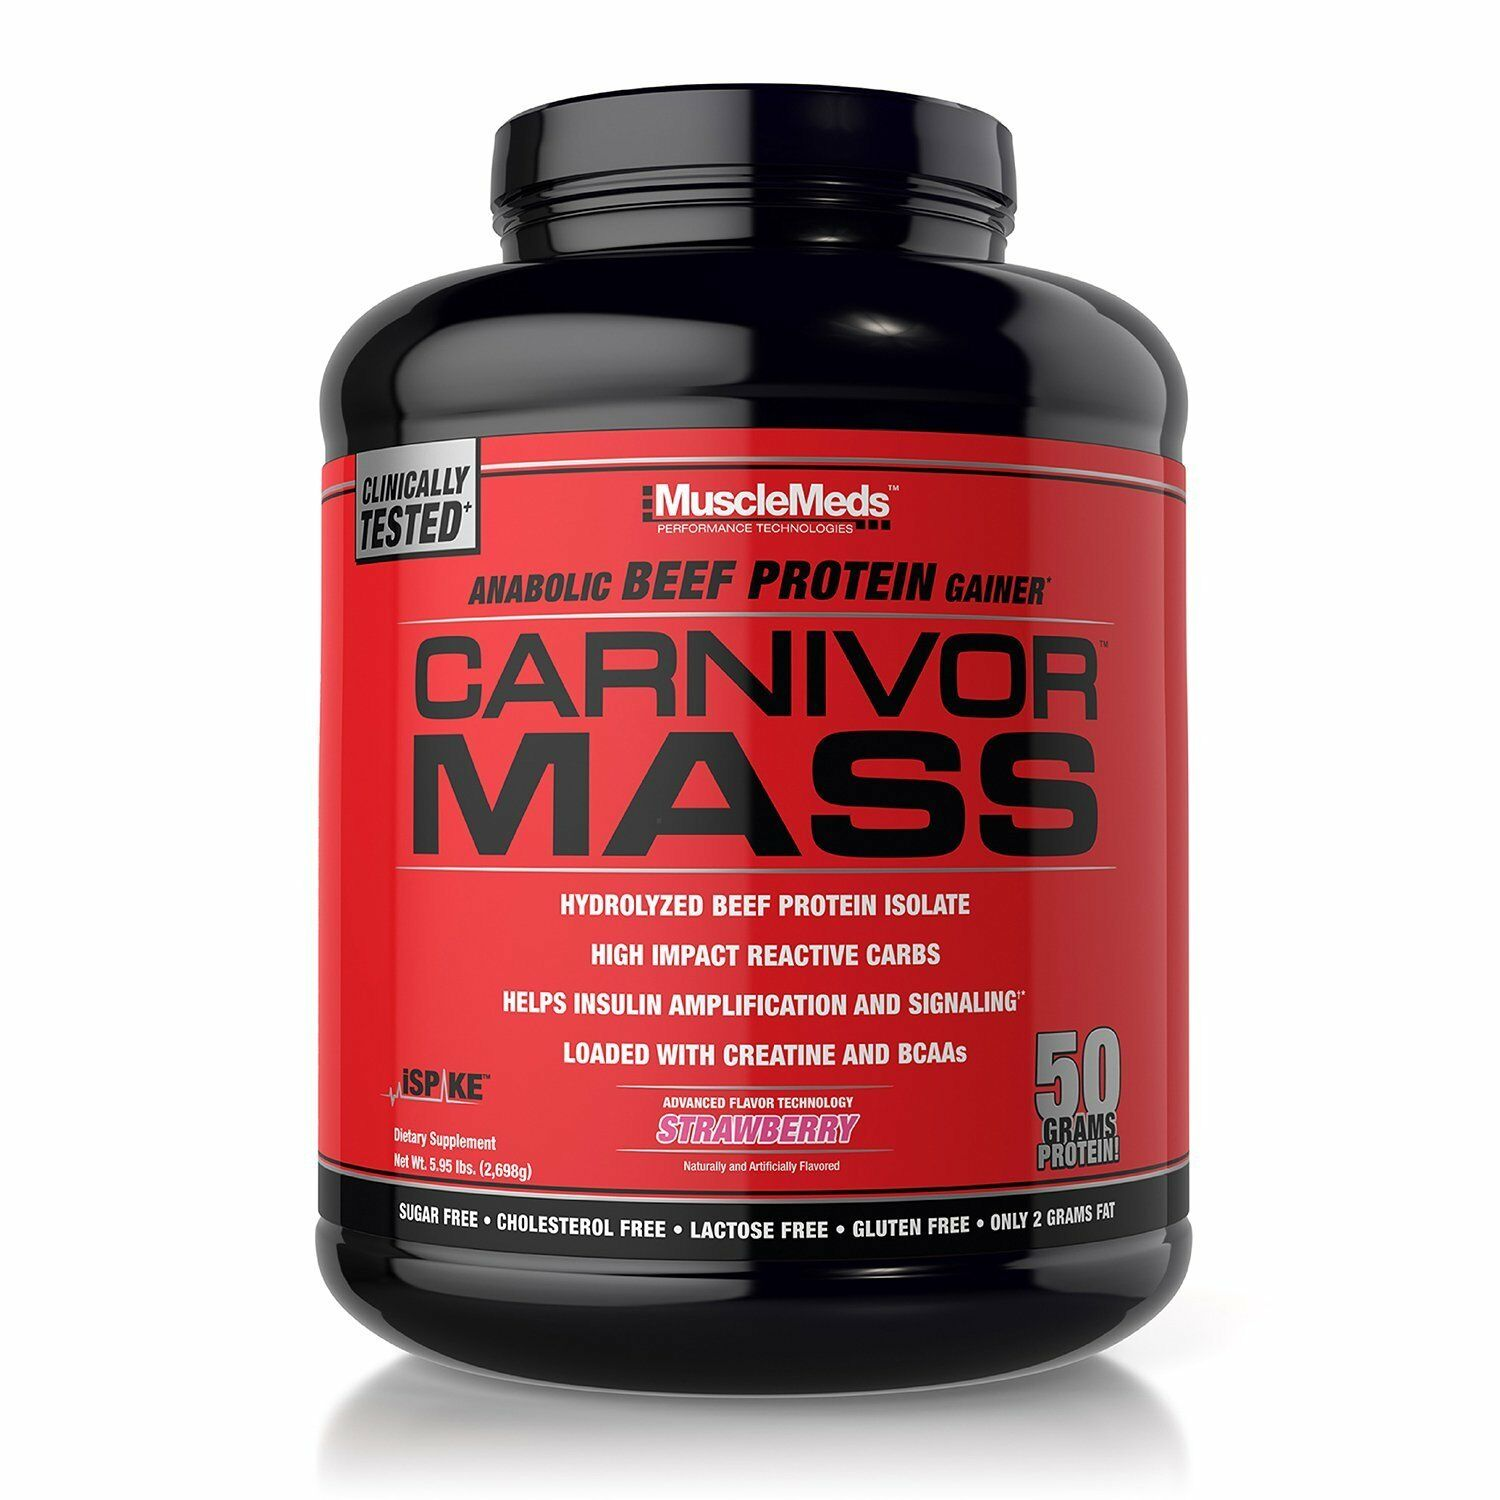 MuscleMeds CARNIVOR MASS 6 lbs Anabolic BEEF PROTEIN Gainer